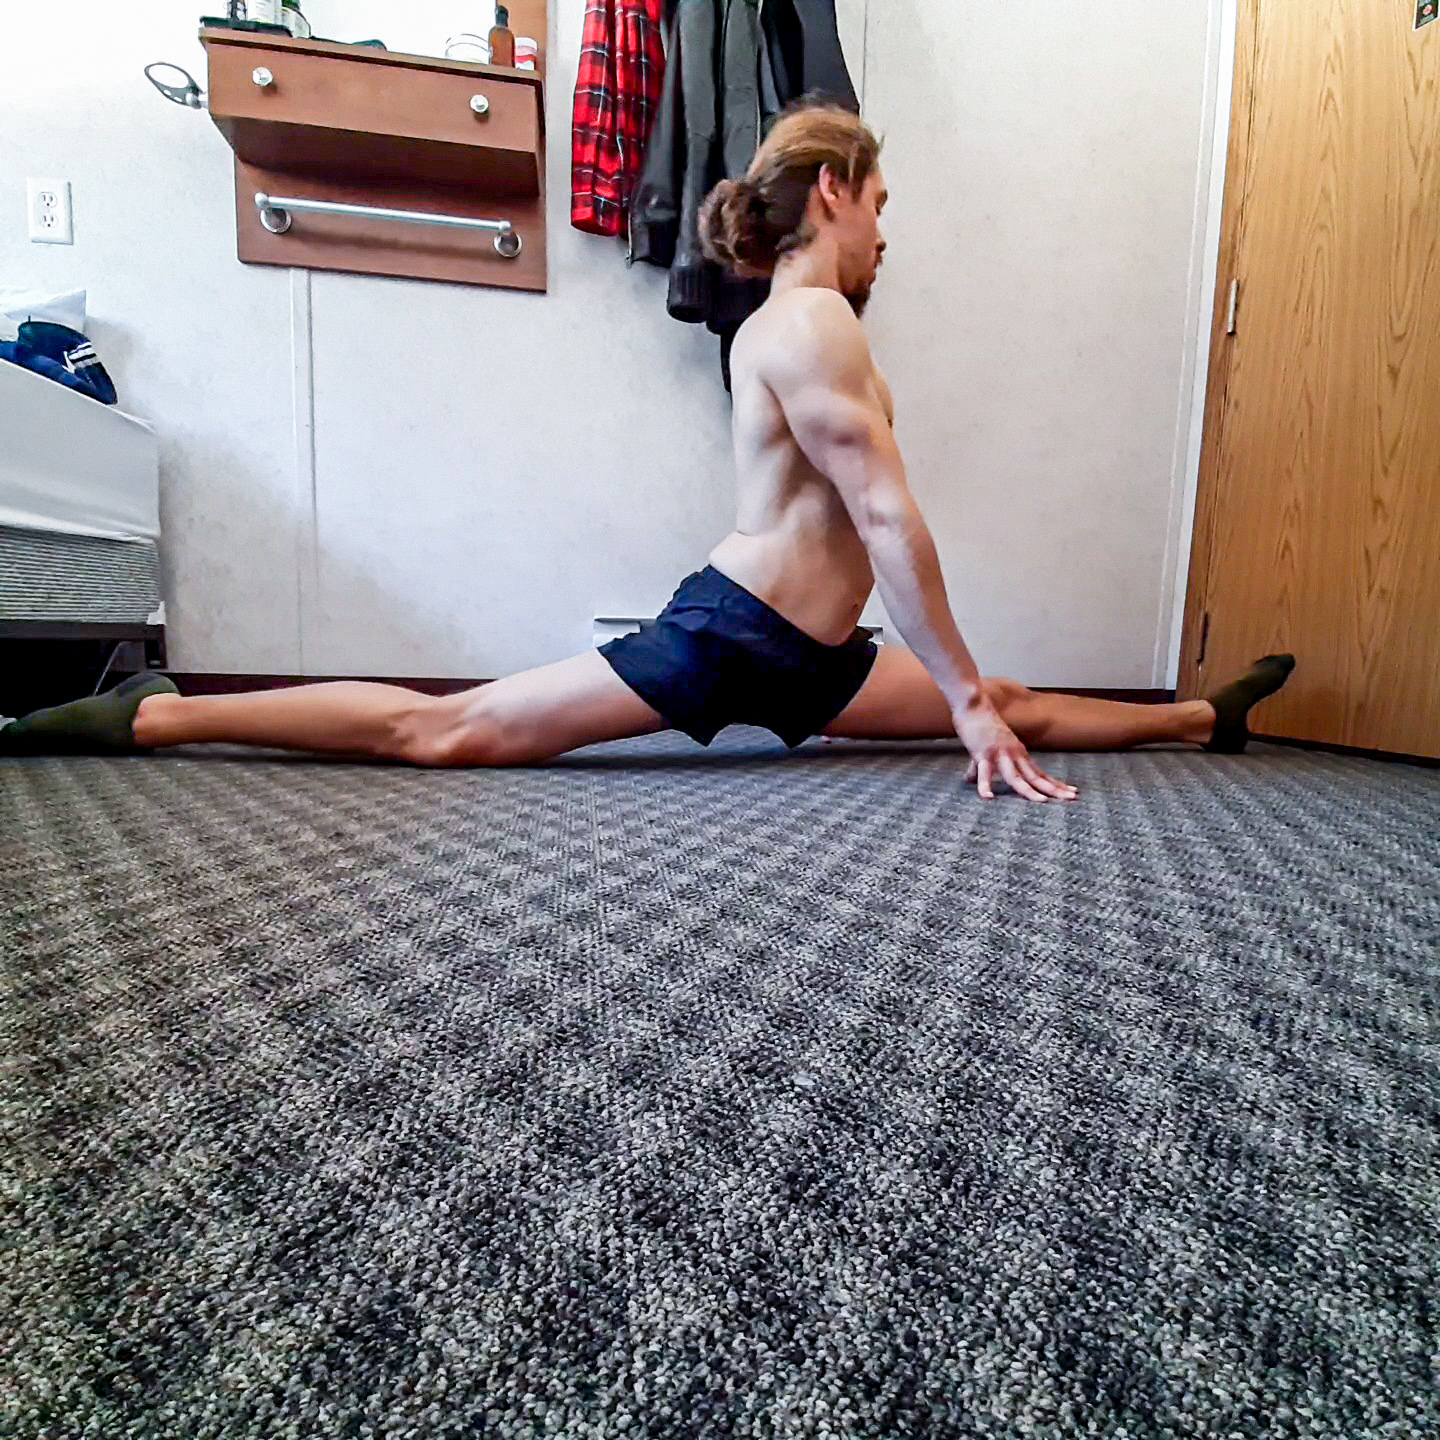 This image shows me performing front splits, one fundamental lower body flexibility position.